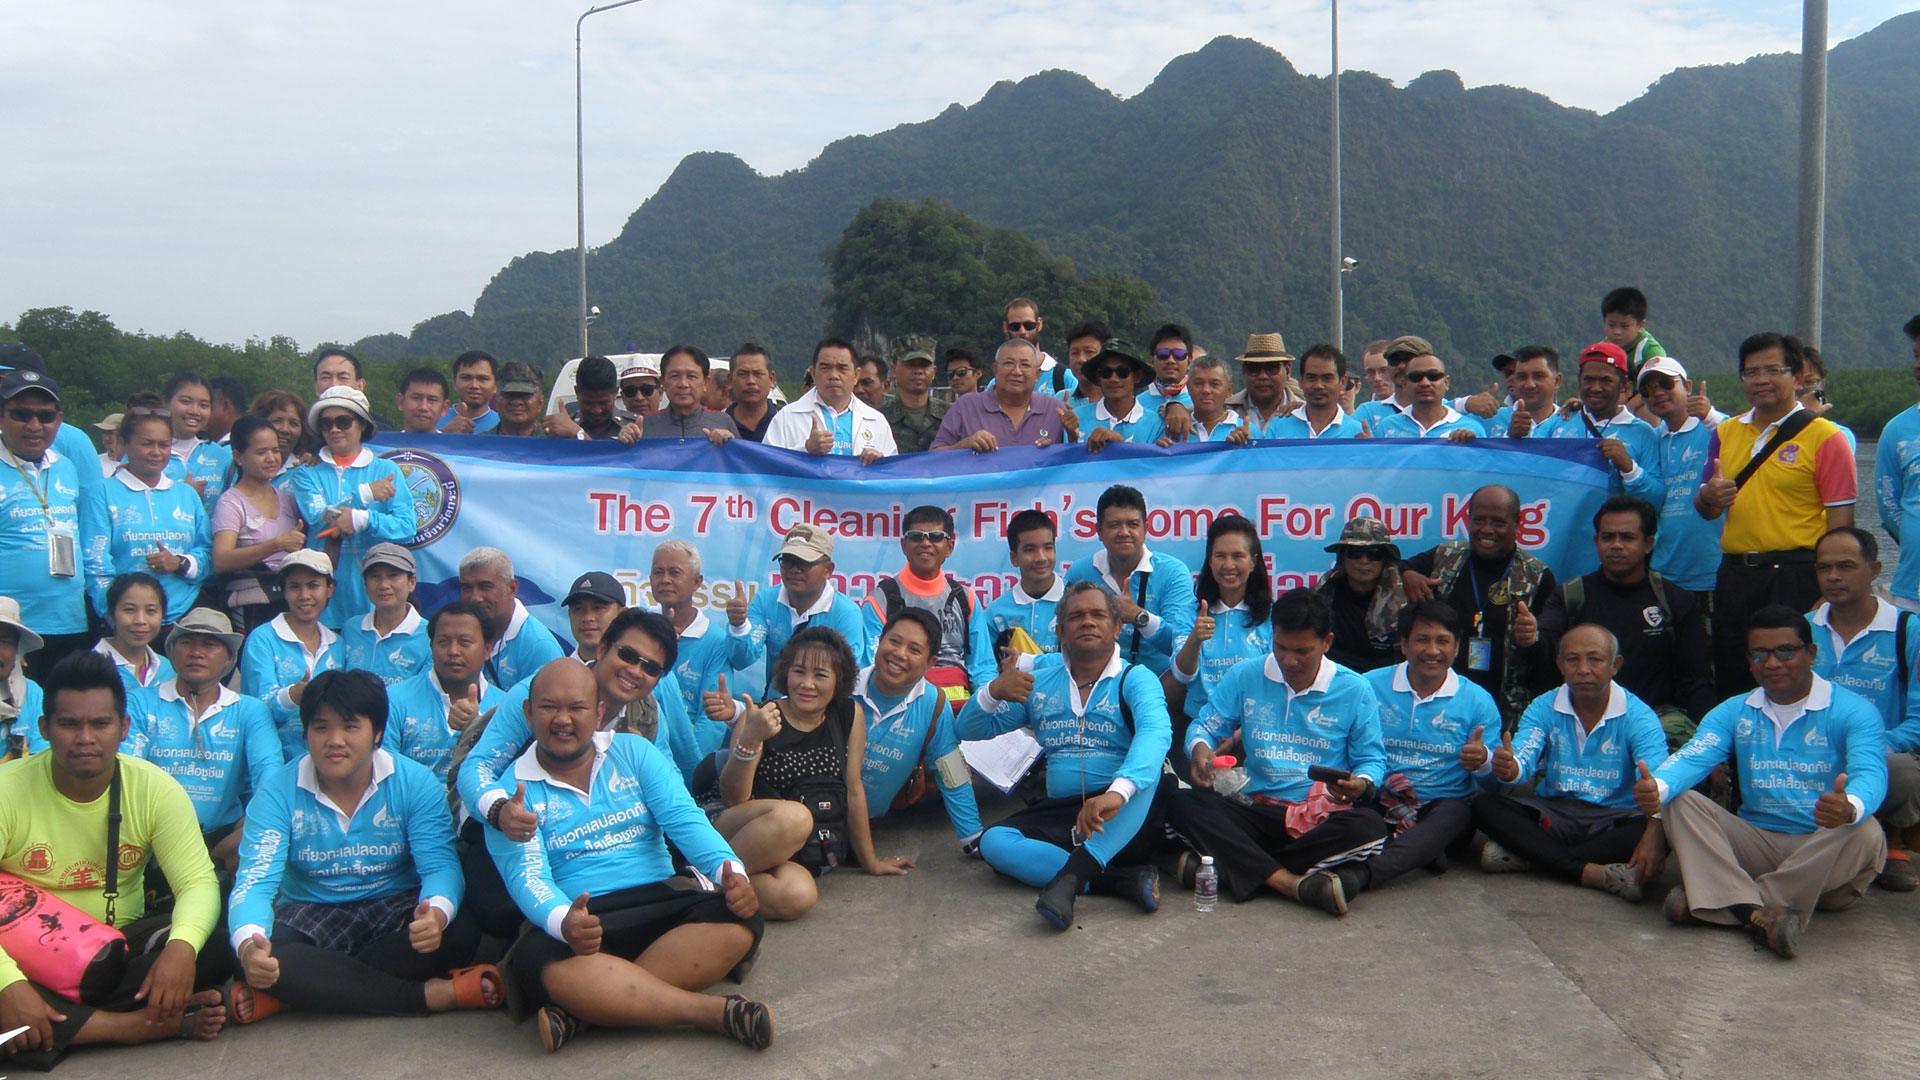 Participants of Cleaning Fish's home for our king at thalans, Krabi December 19, 2015